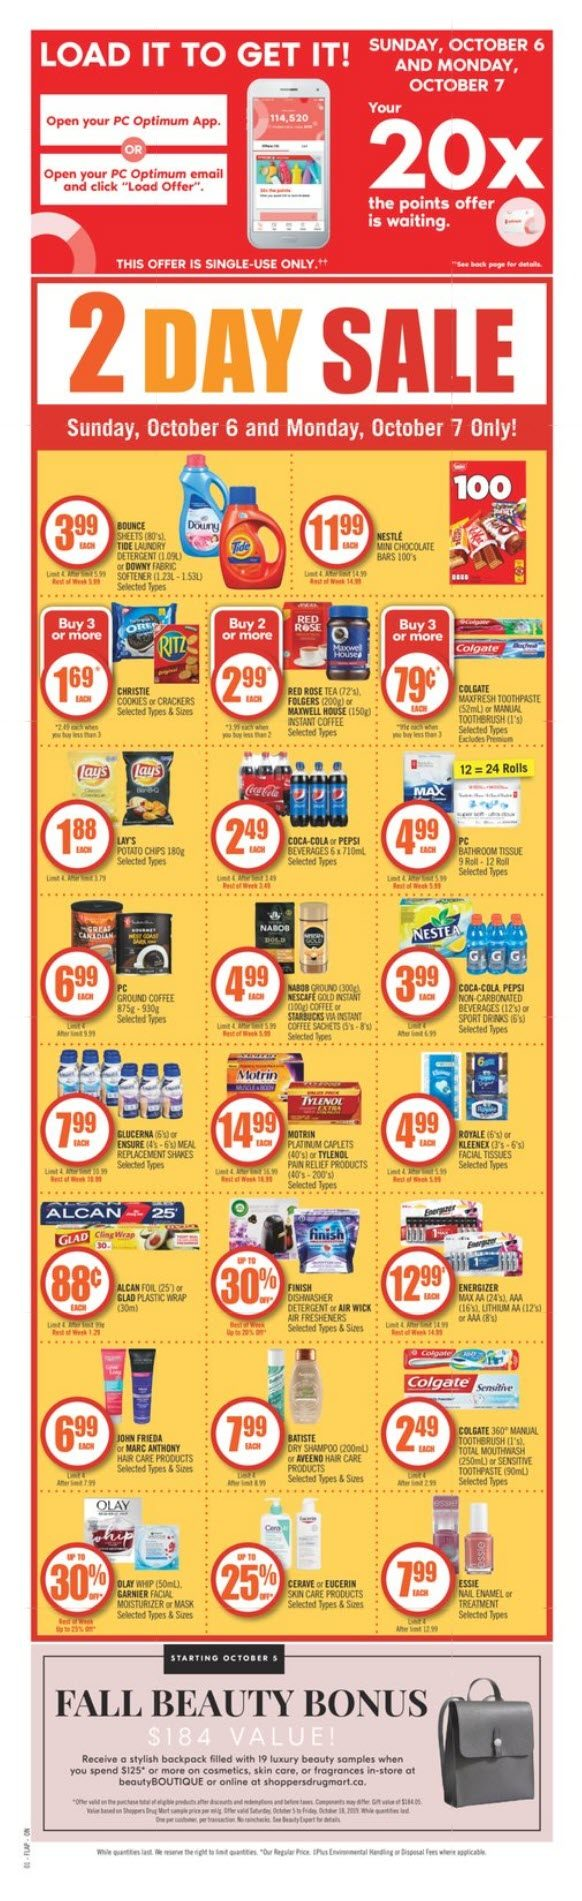 Shoppers Drug Mart Weekly Flyer Weekly Oct 5 10